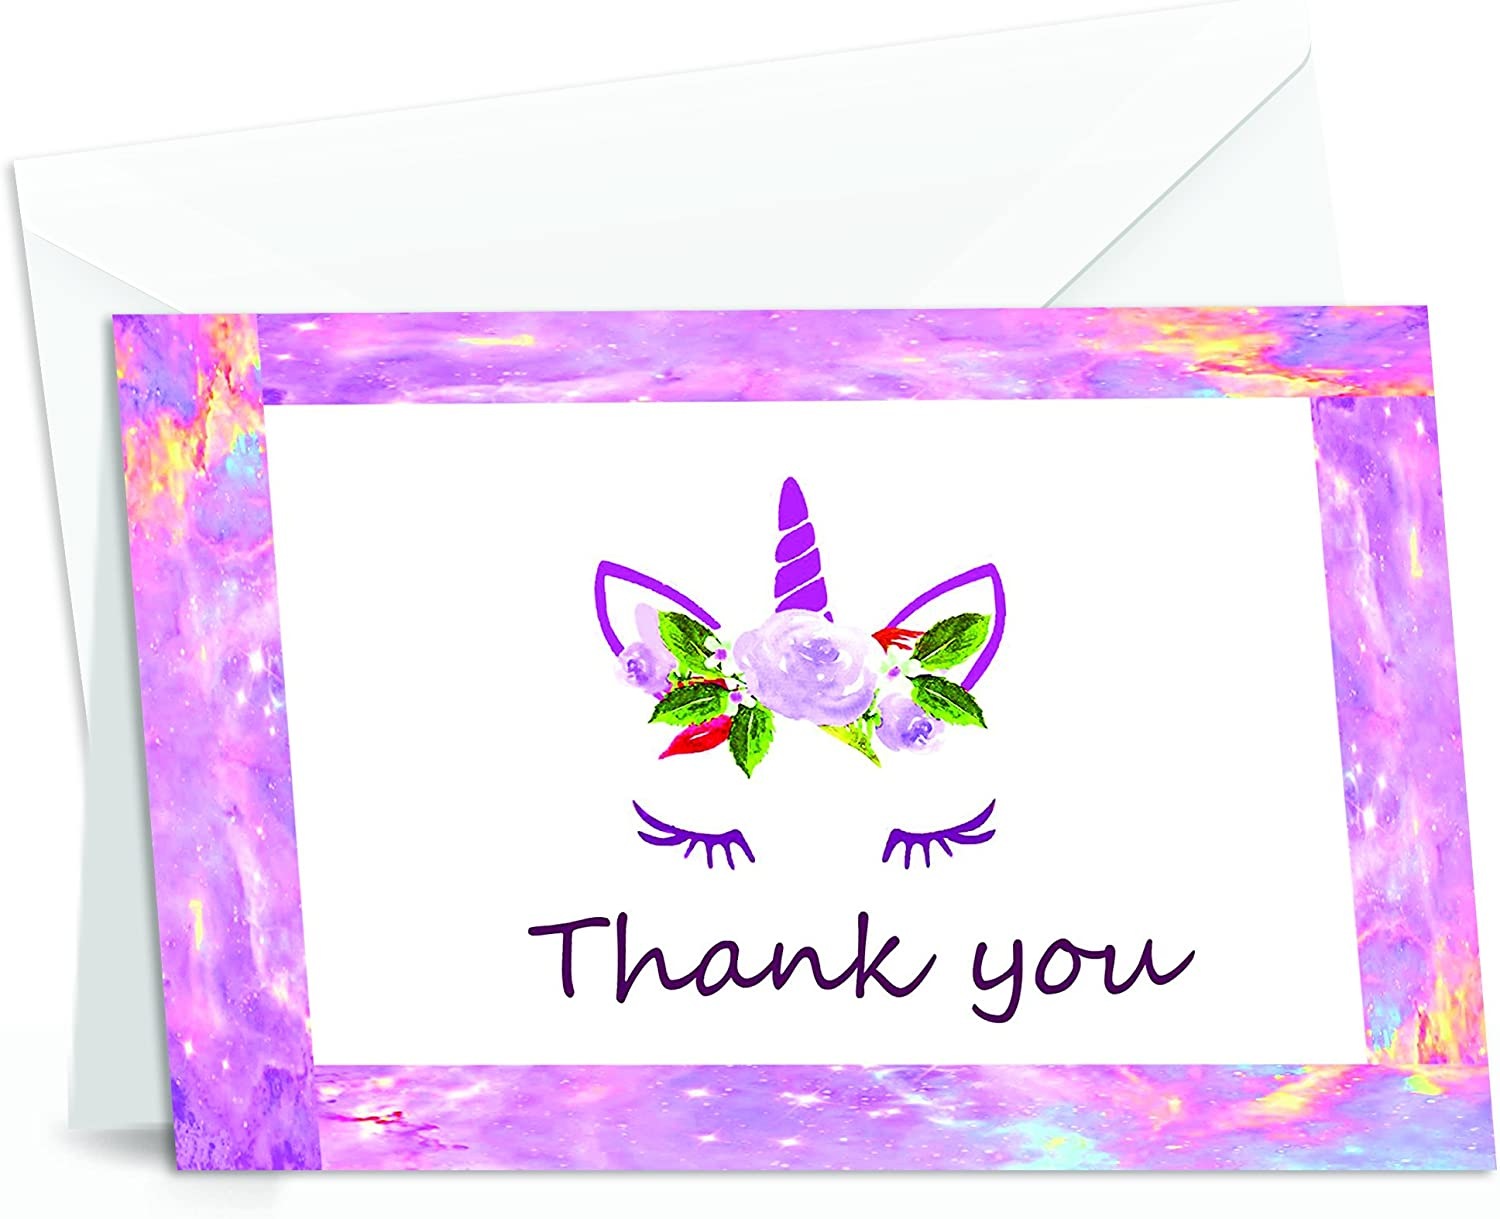 Unicorn Thank You Cards - 4x7 Inches of 50 Purple and Pink Unicorn Design Blank Card Notes with Envelopes - Perfect for Kids and Birthday Parties, Write Happy Gift-Notes for Baby, Graduation, Weddings